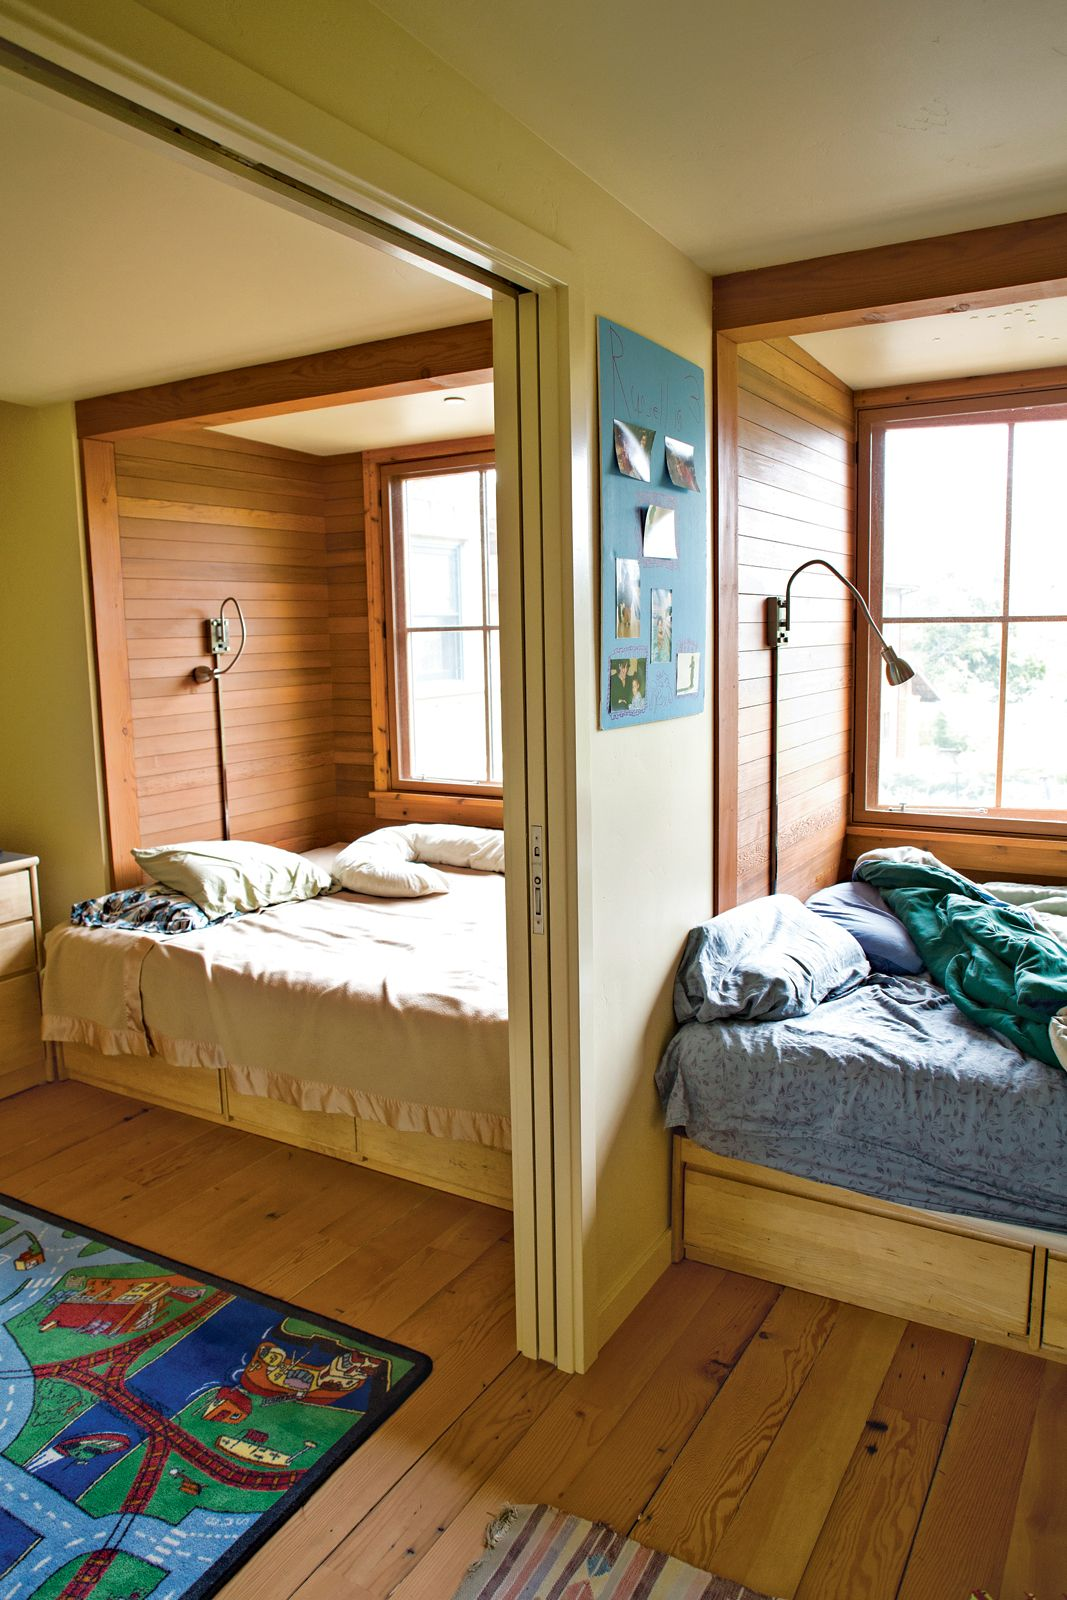 Re Used Dorm Furniture Finds A Place In This Santa Cruz Home Built Out Of  Hay Bales.